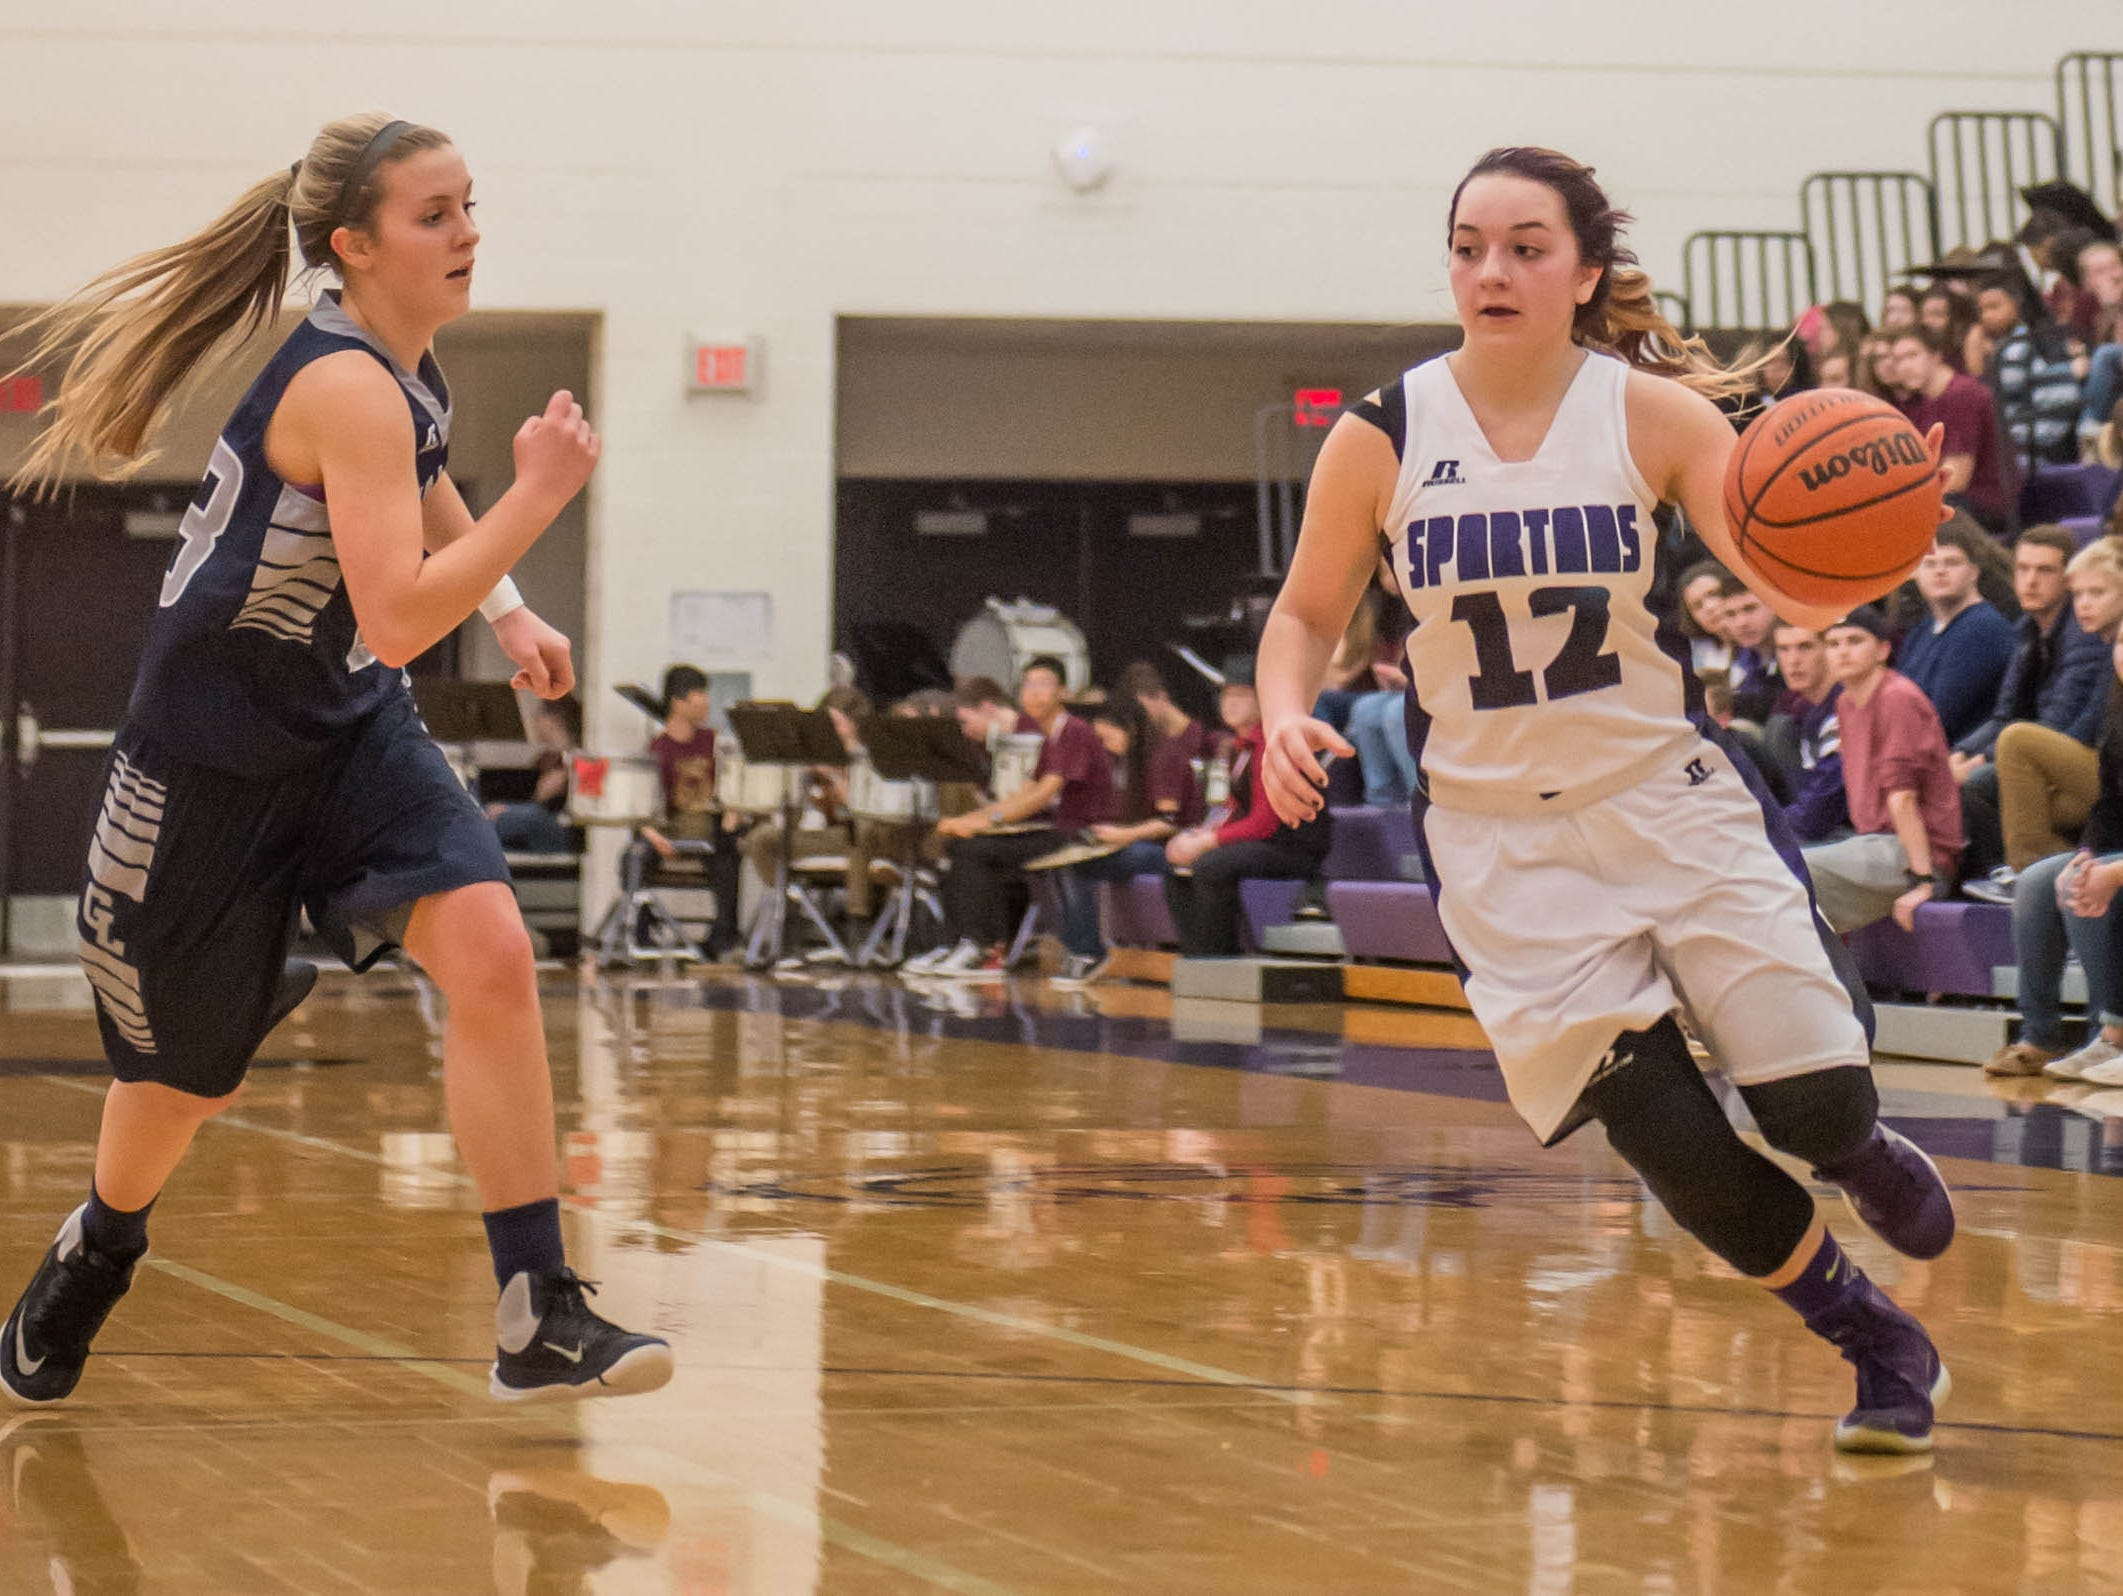 Lakeview's Chloe McAllister drives to the hoop against Gull Lake in Friday evening's game.